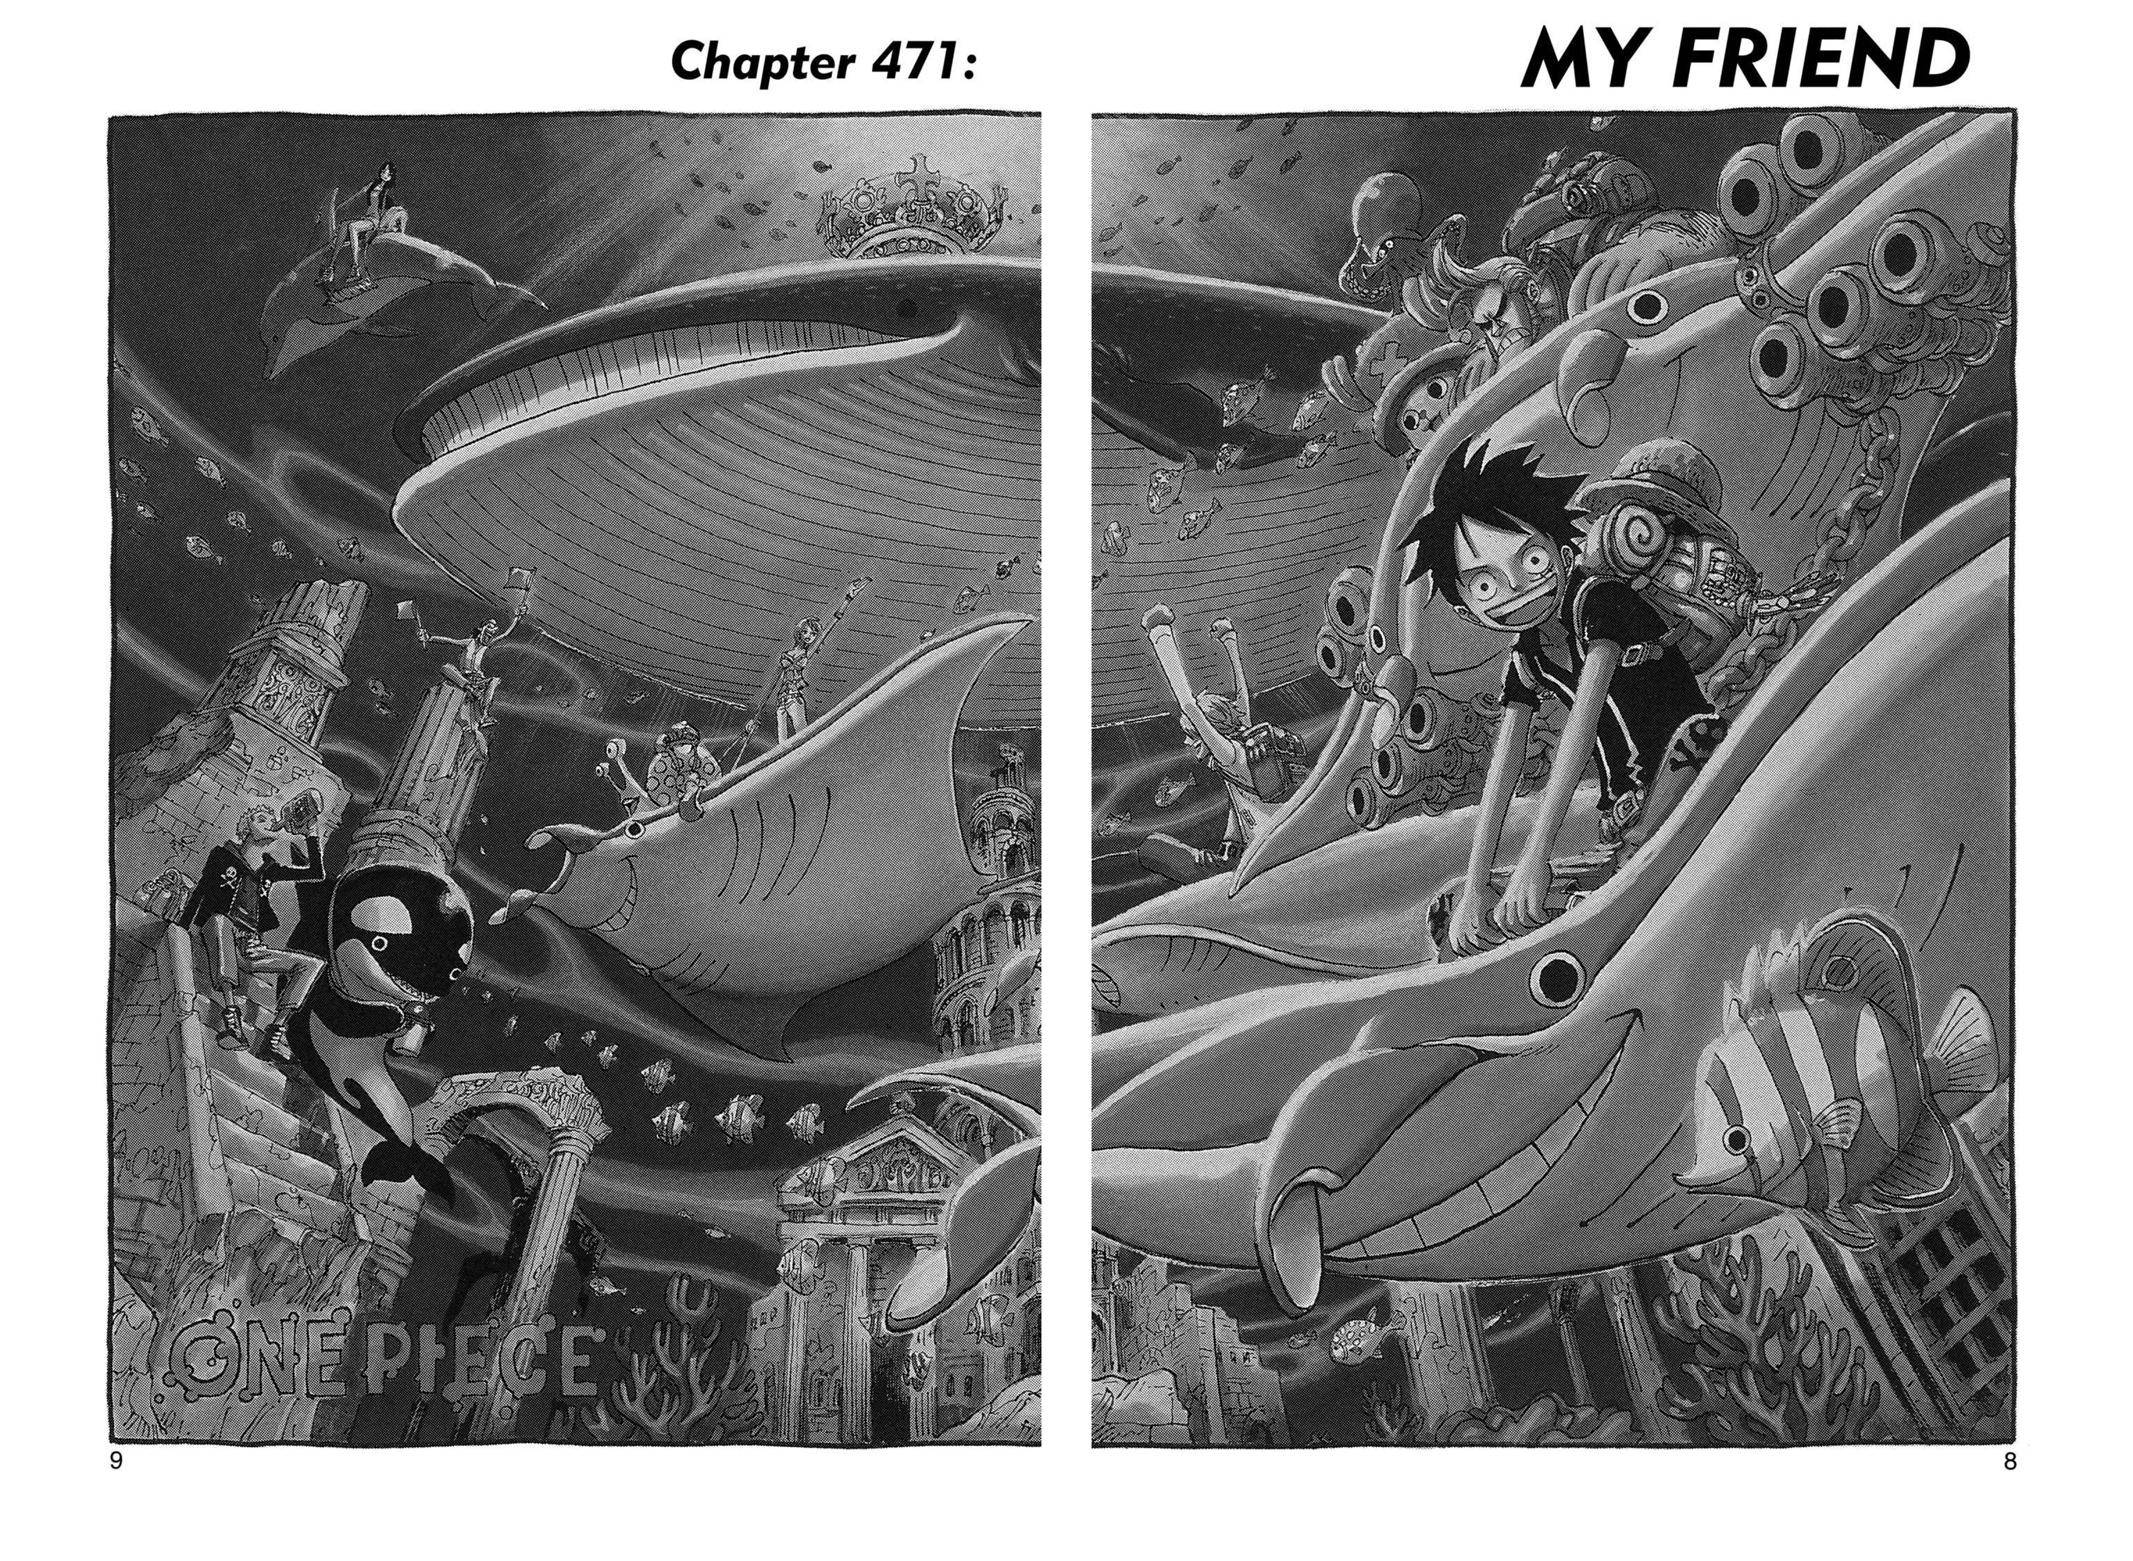 One Piece Chapter 471 Page 8